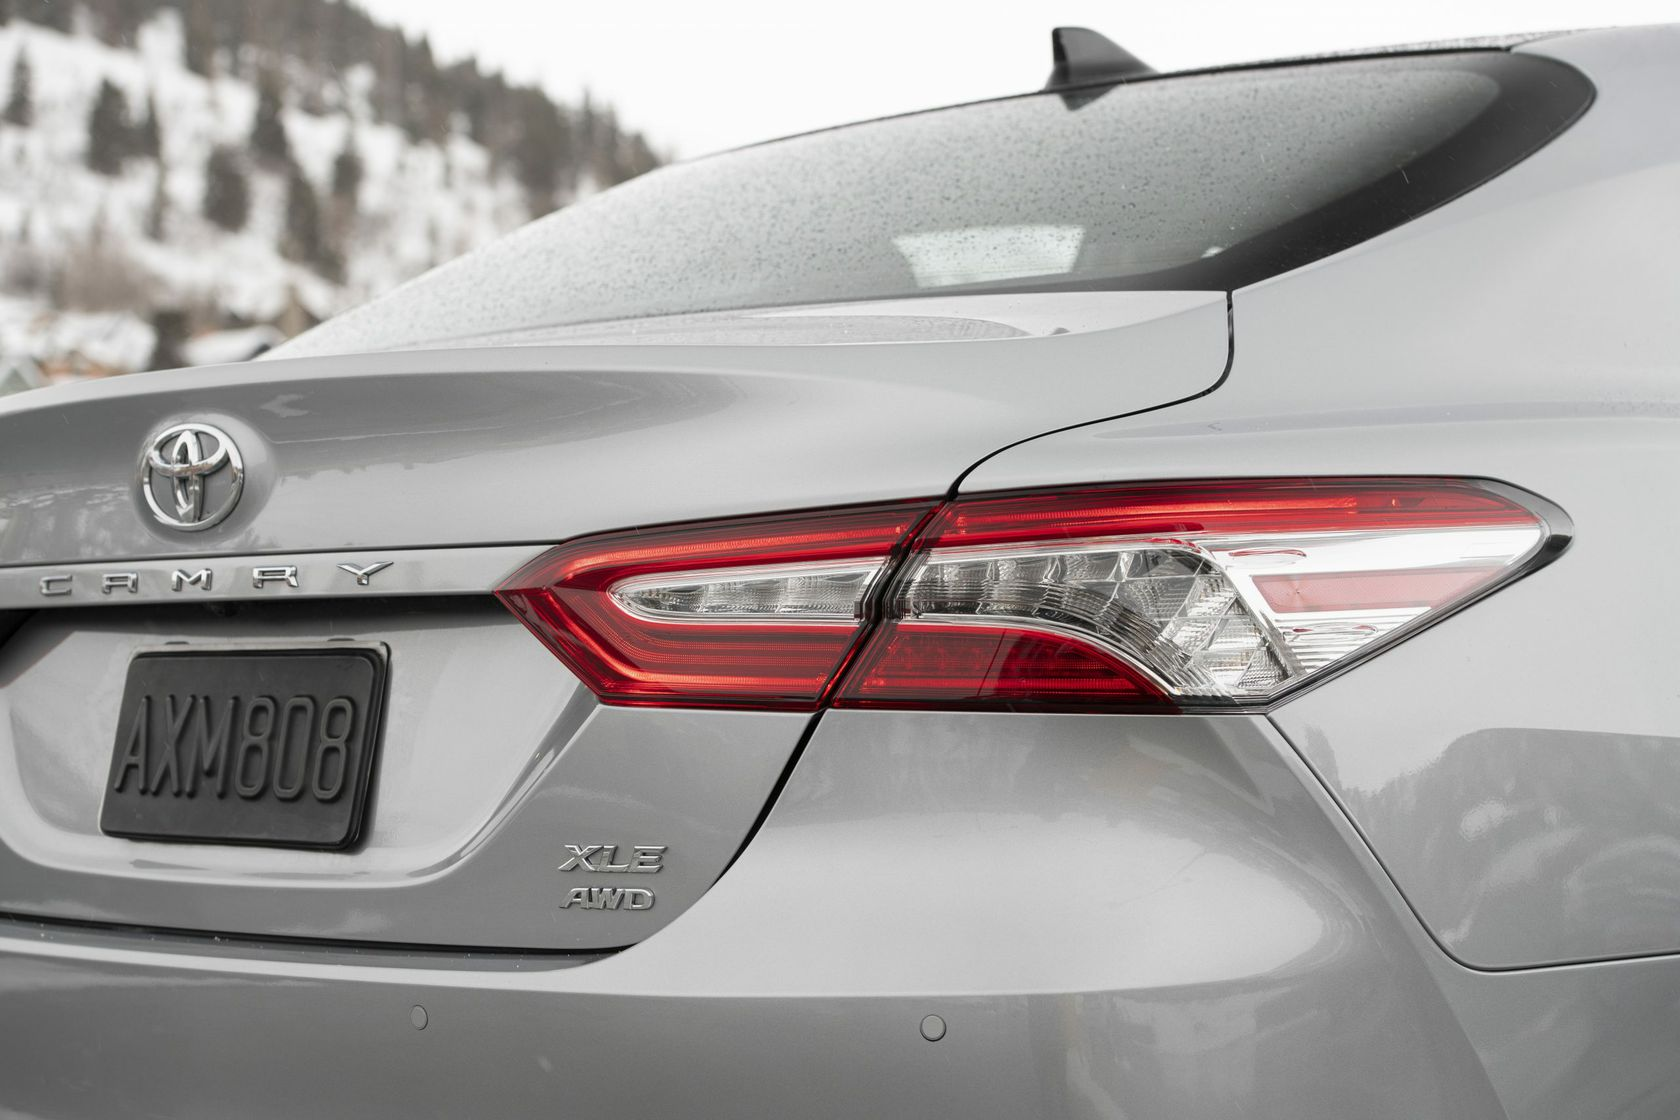 2020_Camry_XLE_AWD_Celestite-Silver_049-scaled